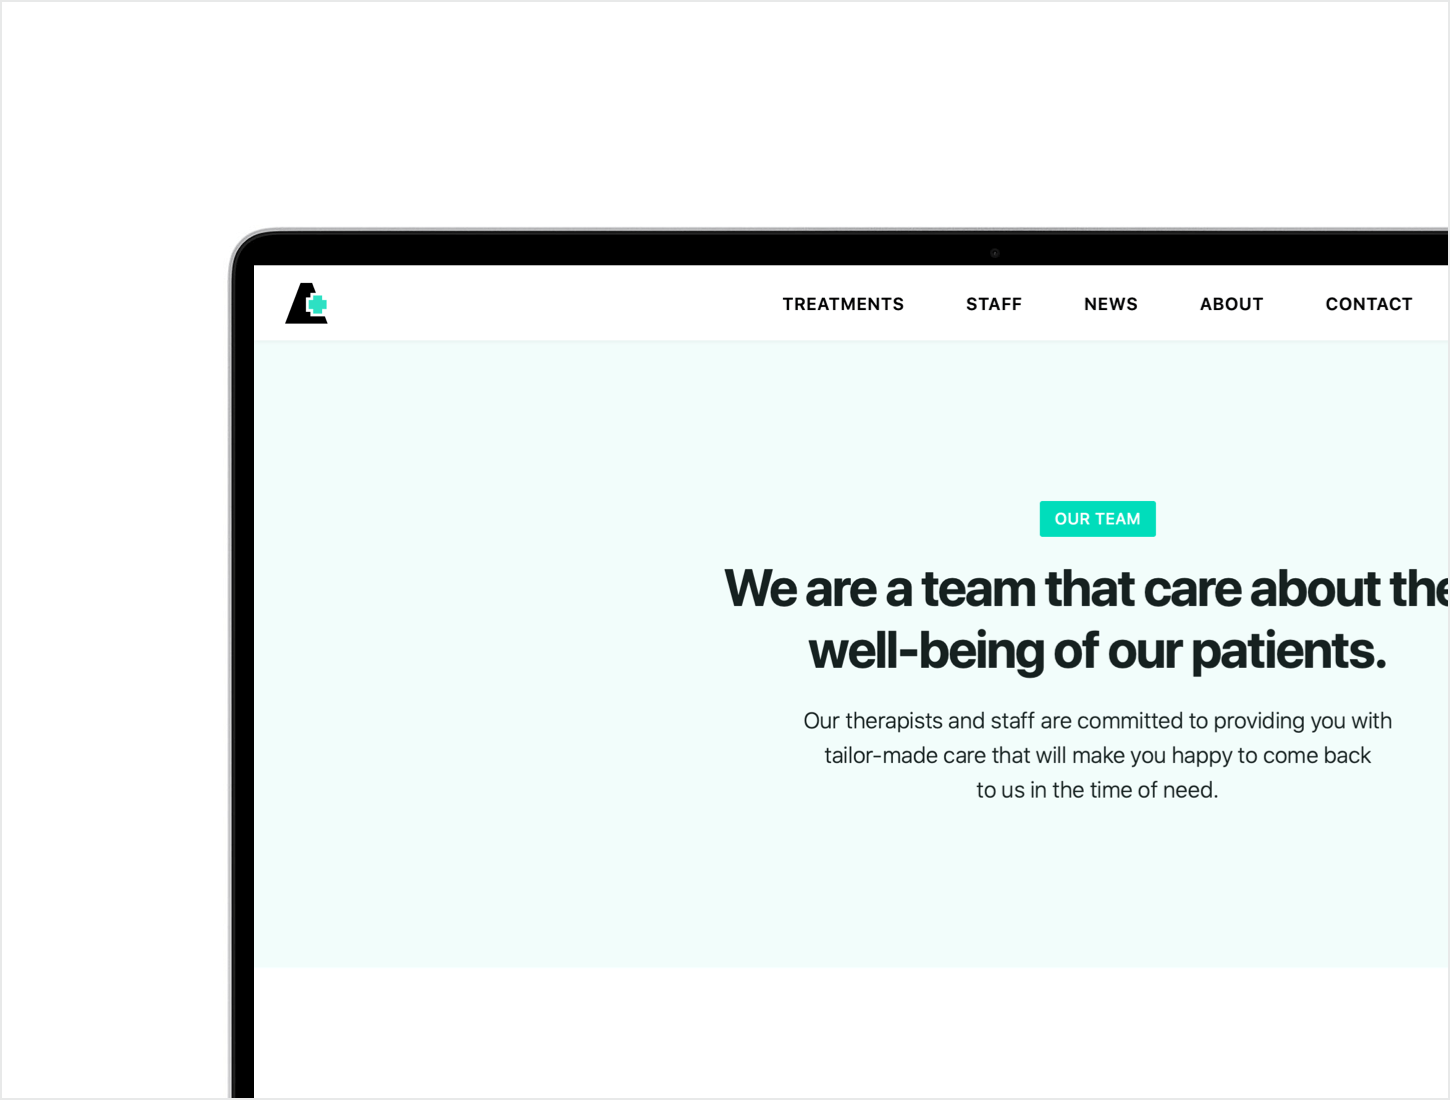 About page of healthcare website template on MacBook Pro